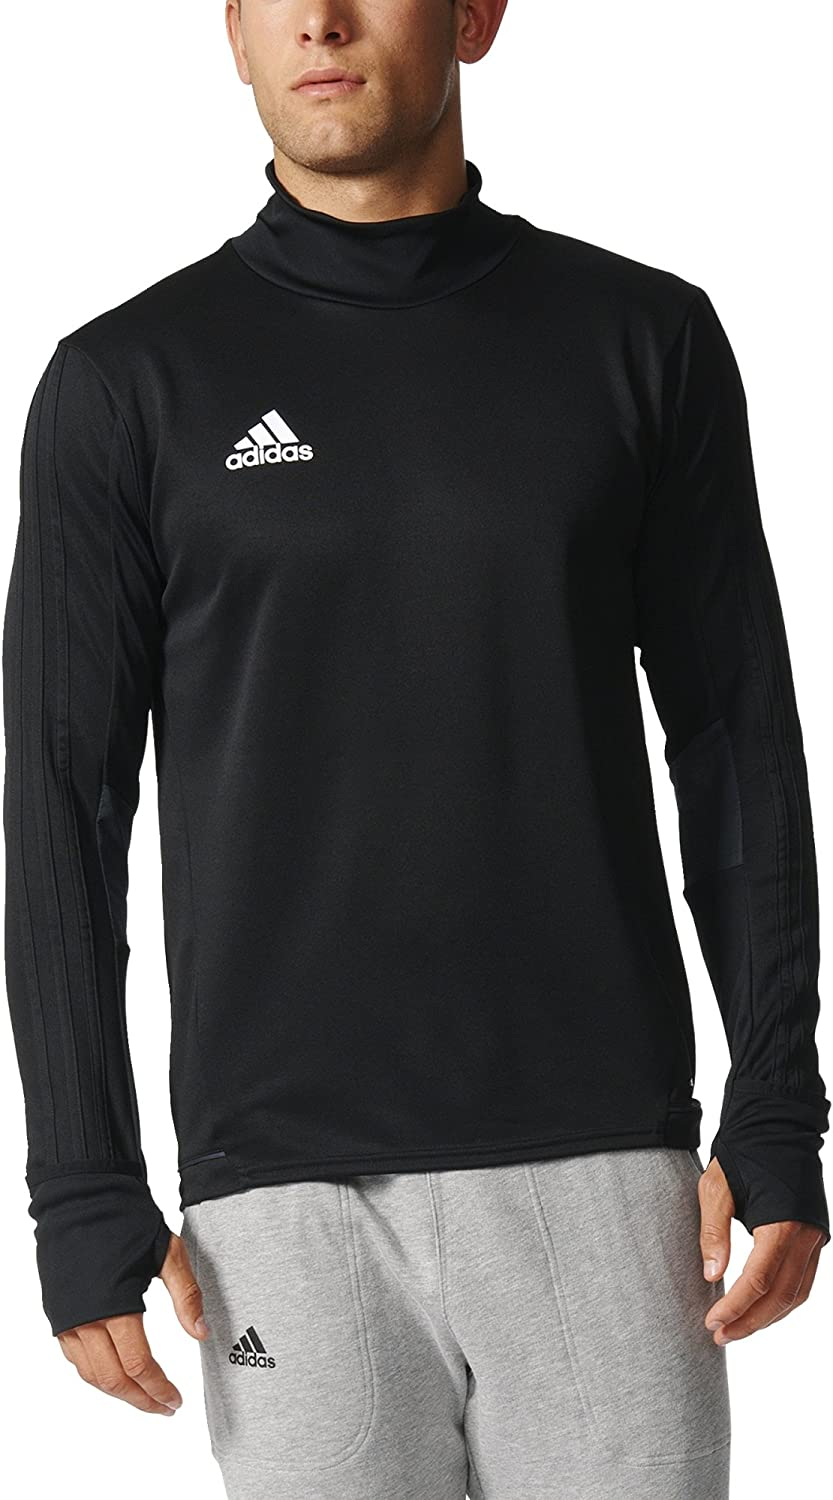 Sales of SALE items from new works adidas safety Tiro 17 Shirt Training